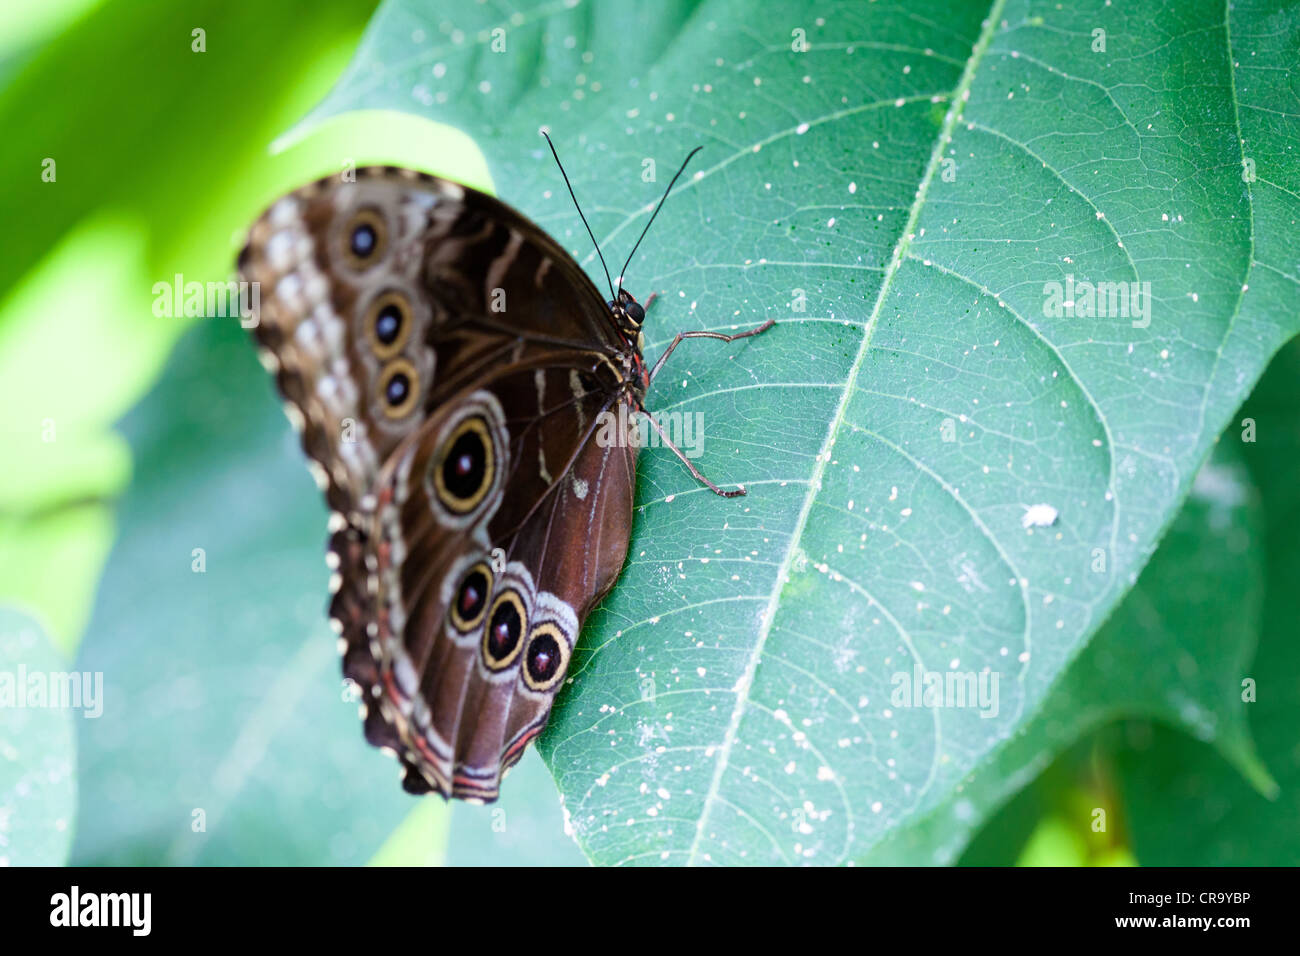 Owl Butterfly Caligo Memnon Resting on leaf see also CR9YD6 and CR9YEN - Stock Image